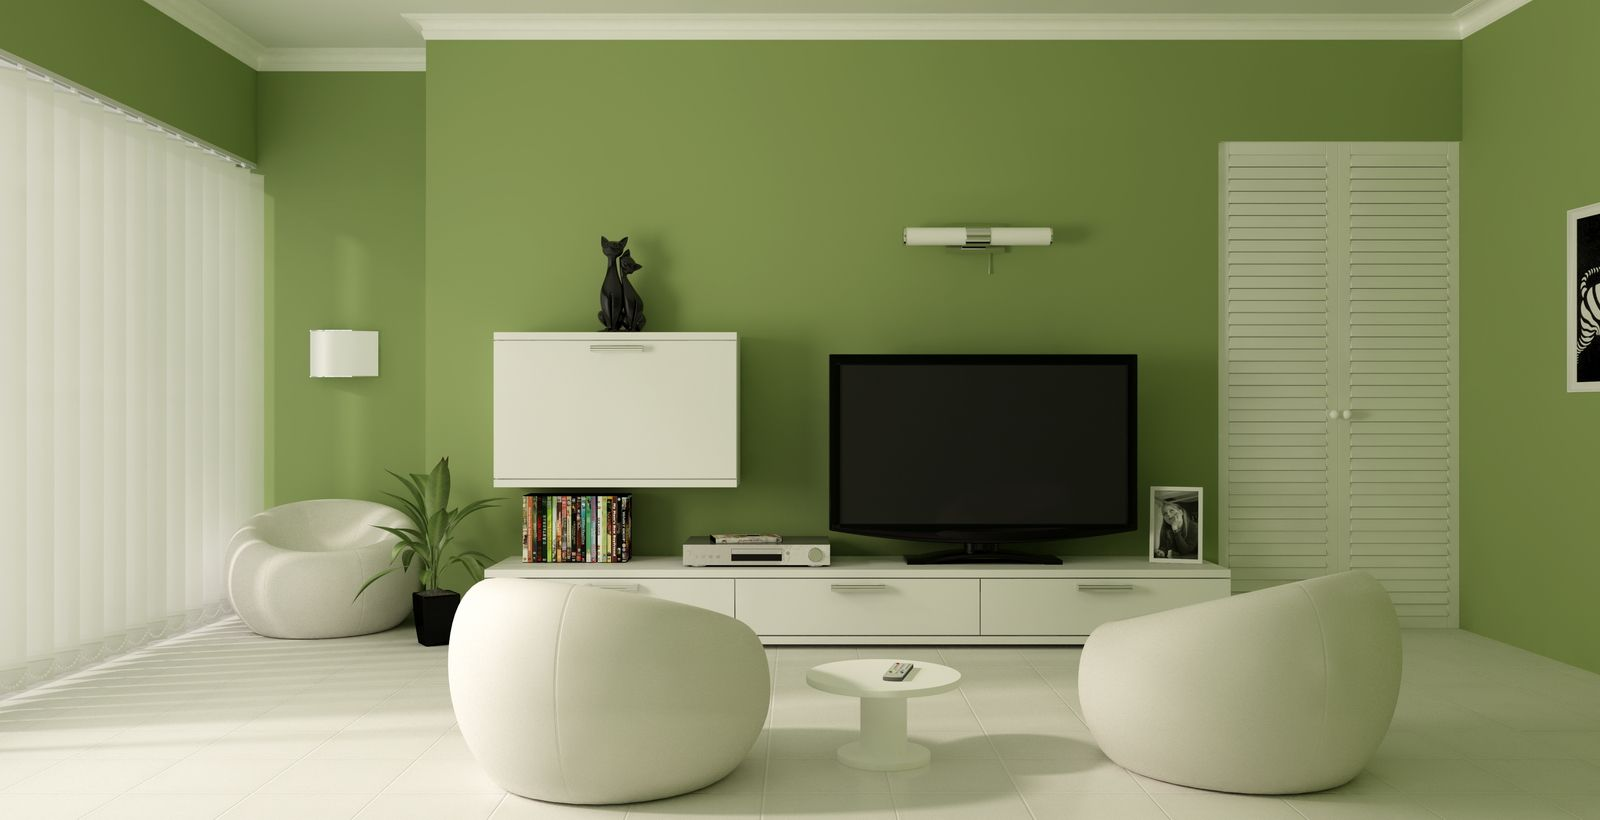 Room Colora paint colors ideas for living room | green paint colors, living